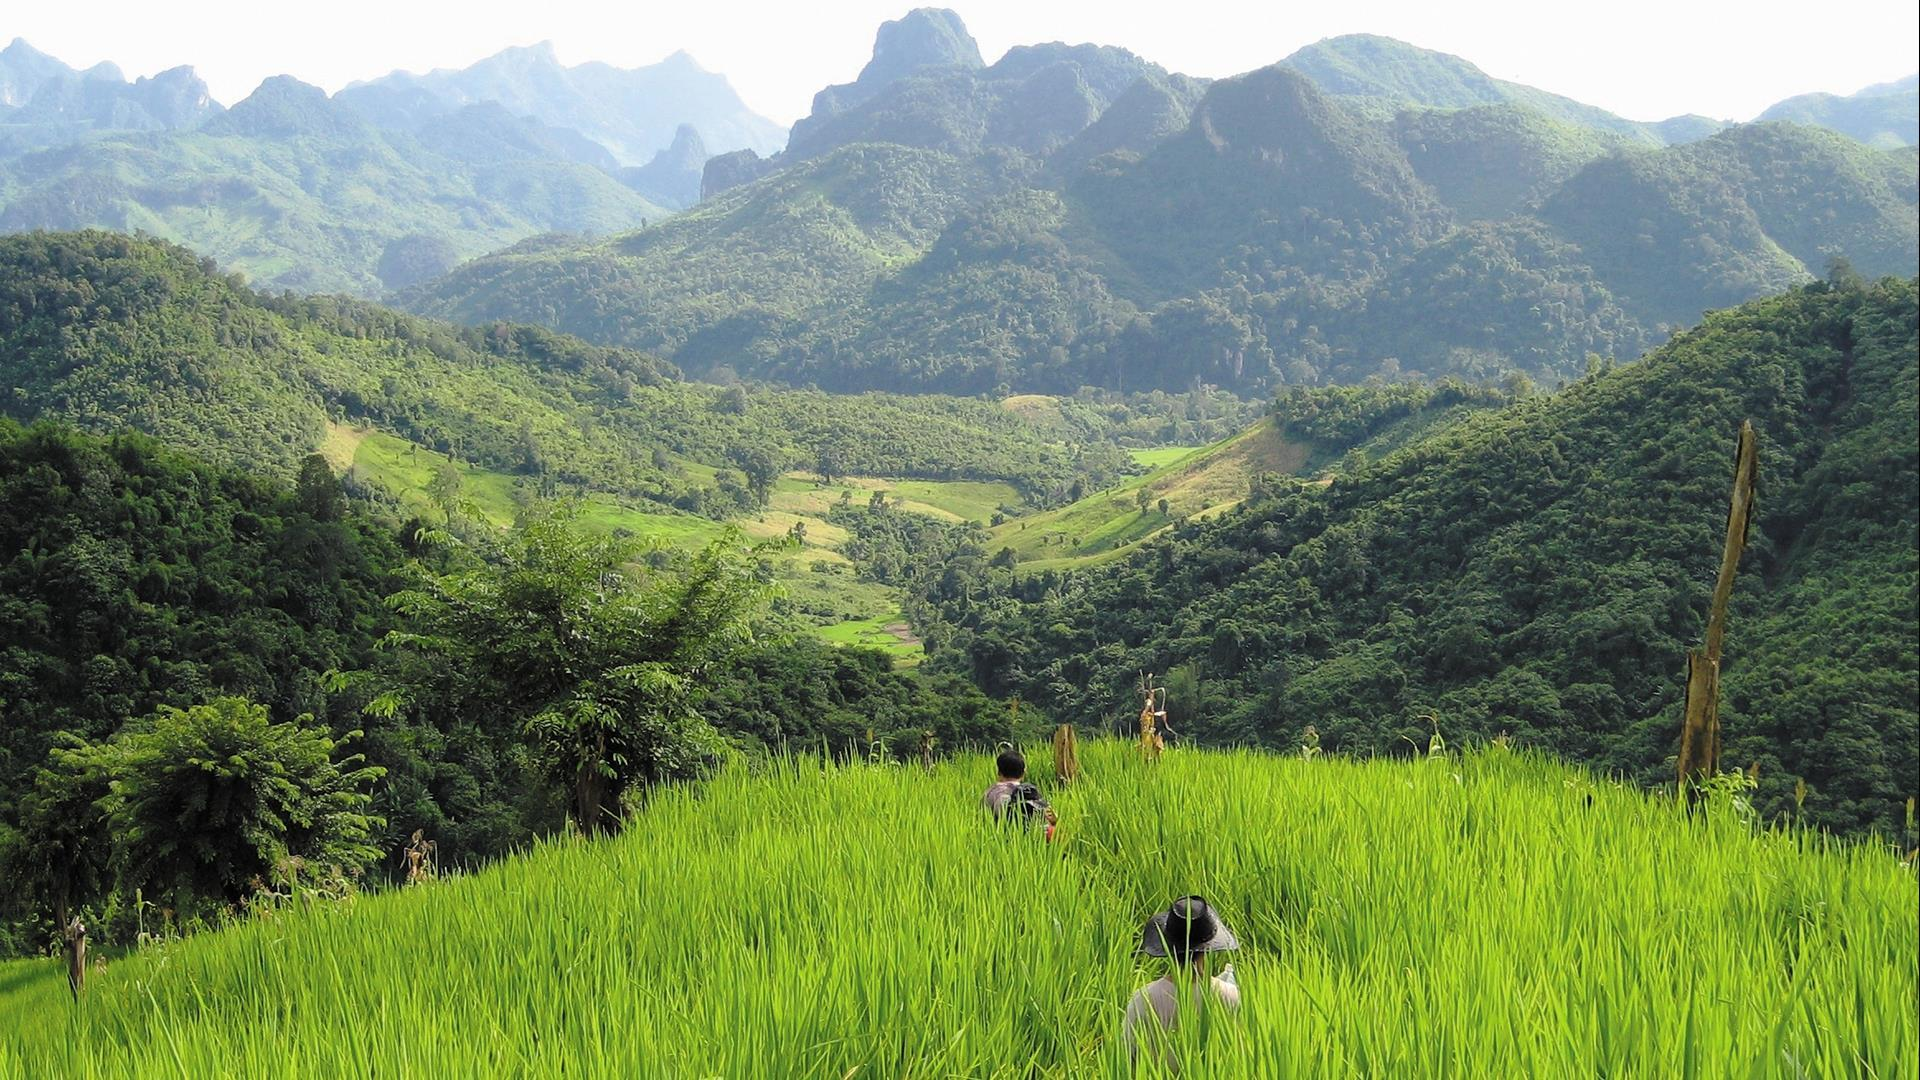 Laos, Nong Khiaw : Nong Khiaw Jungle Trek and Homestay - 2 Days | Nong Khiaw Discovery